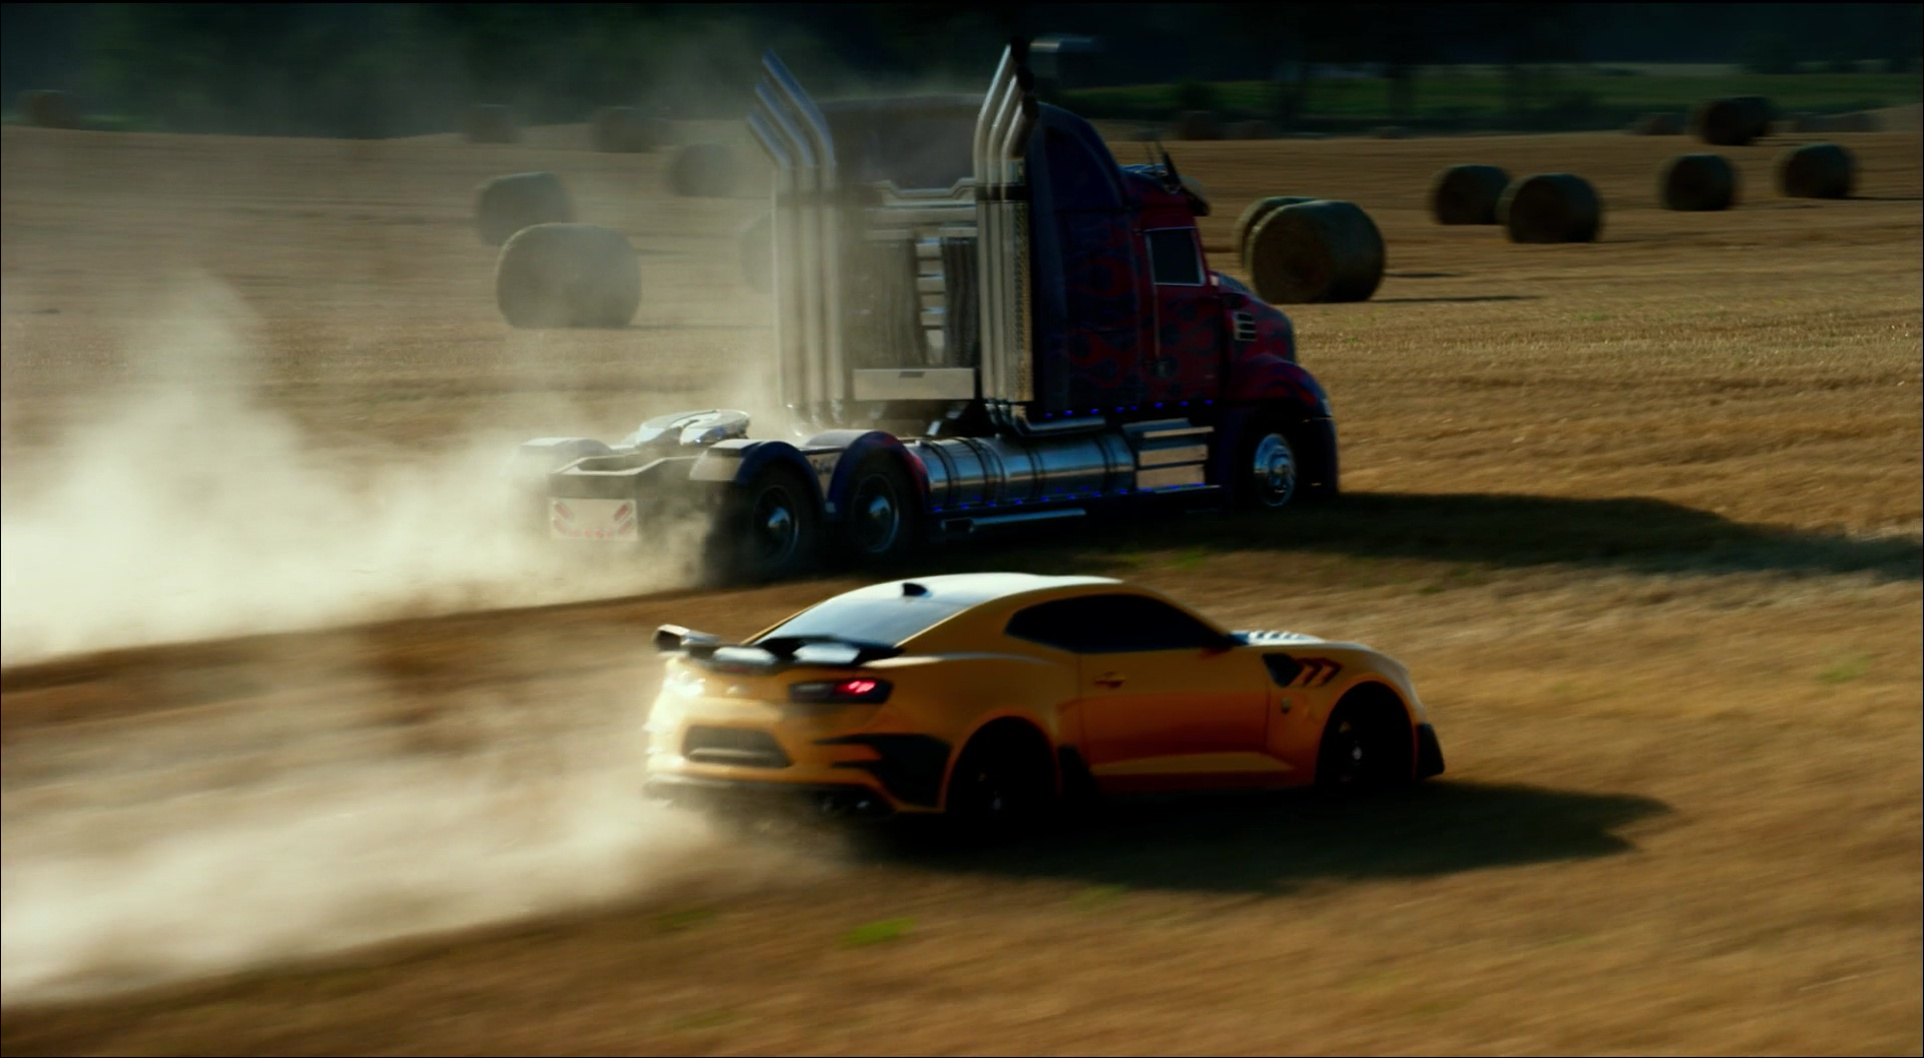 Exotic Car Brands >> Chevrolet Camaro Car/Autobot in Transformers 5: The Last Knight (2017) Movie